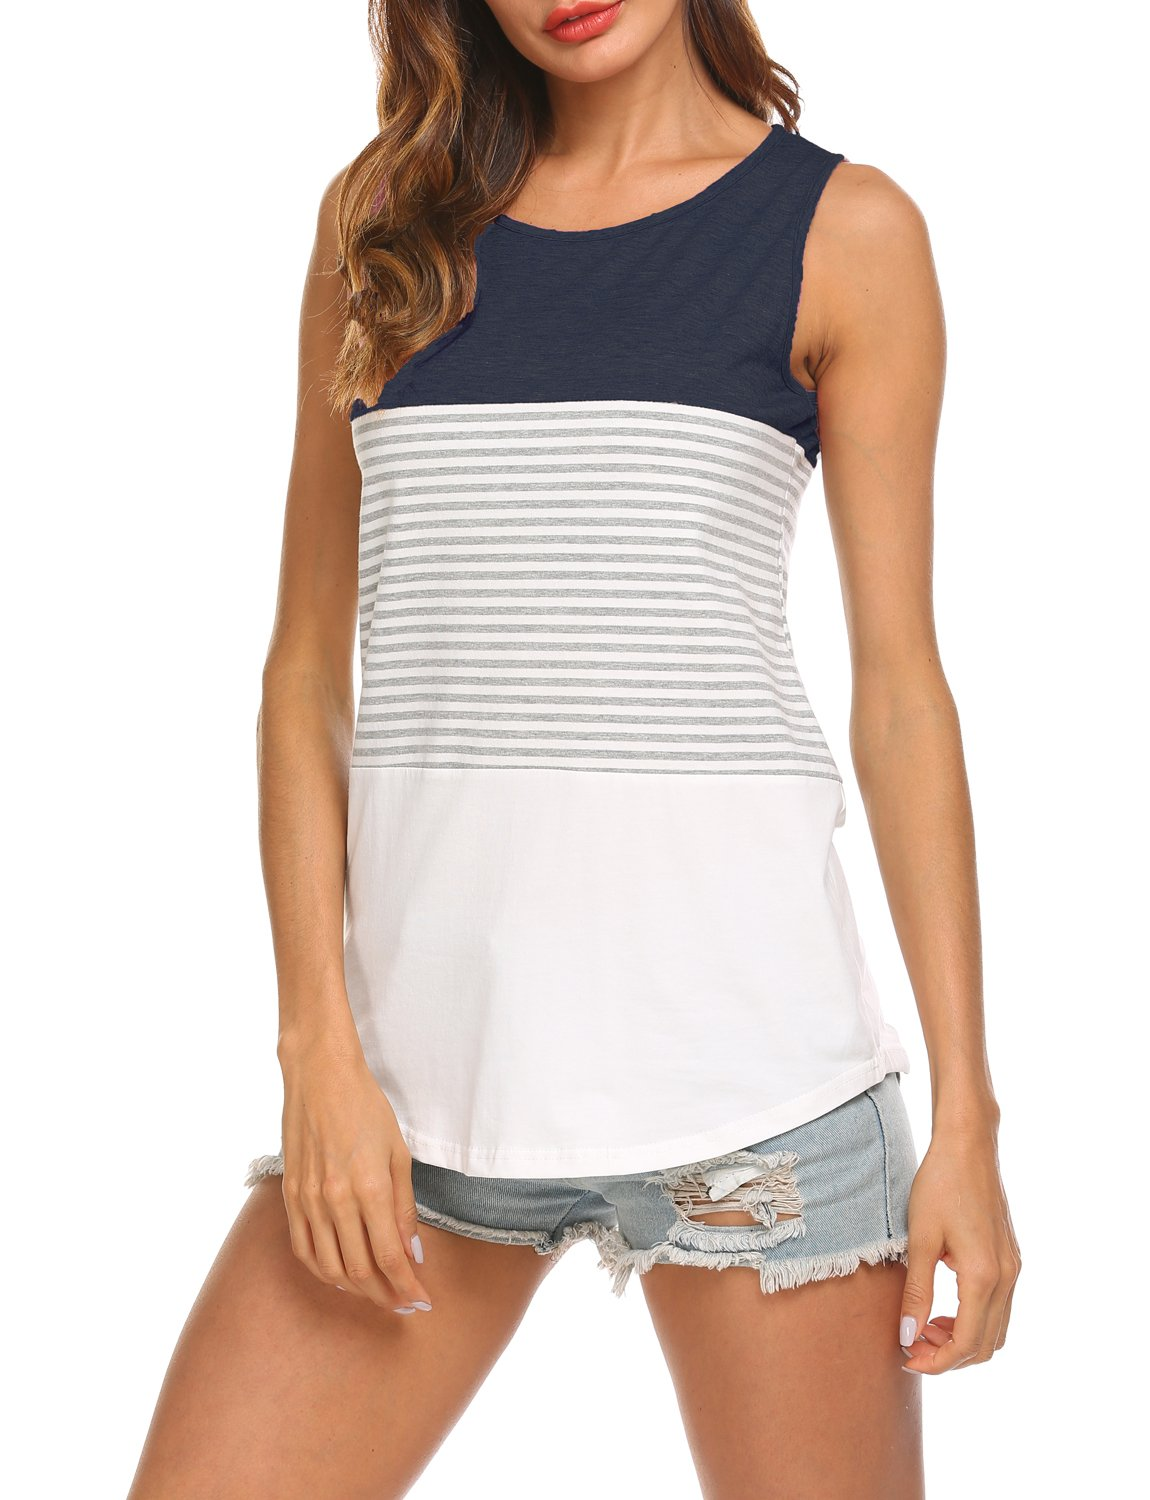 Hount Woman's Casual Round Neck Sleeveless Striped Summer Tank Tops (Navy Blue, L)